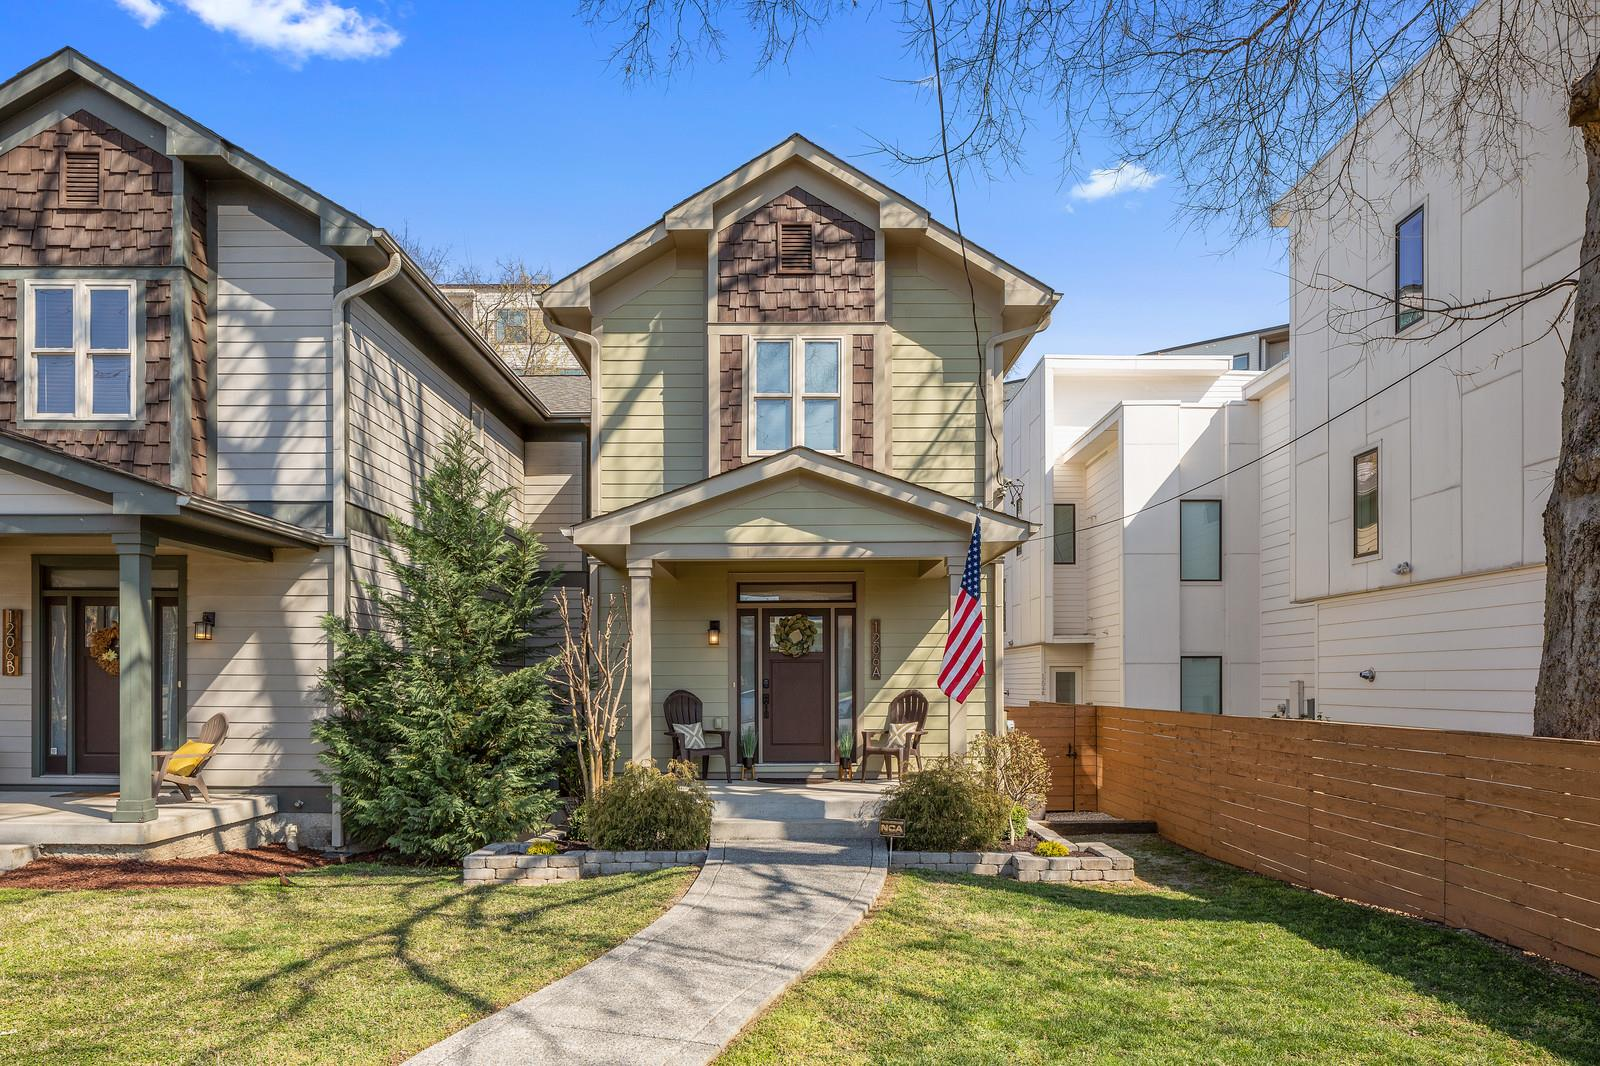 1206A Sigler St, Nashville - Midtown in Davidson County County, TN 37203 Home for Sale